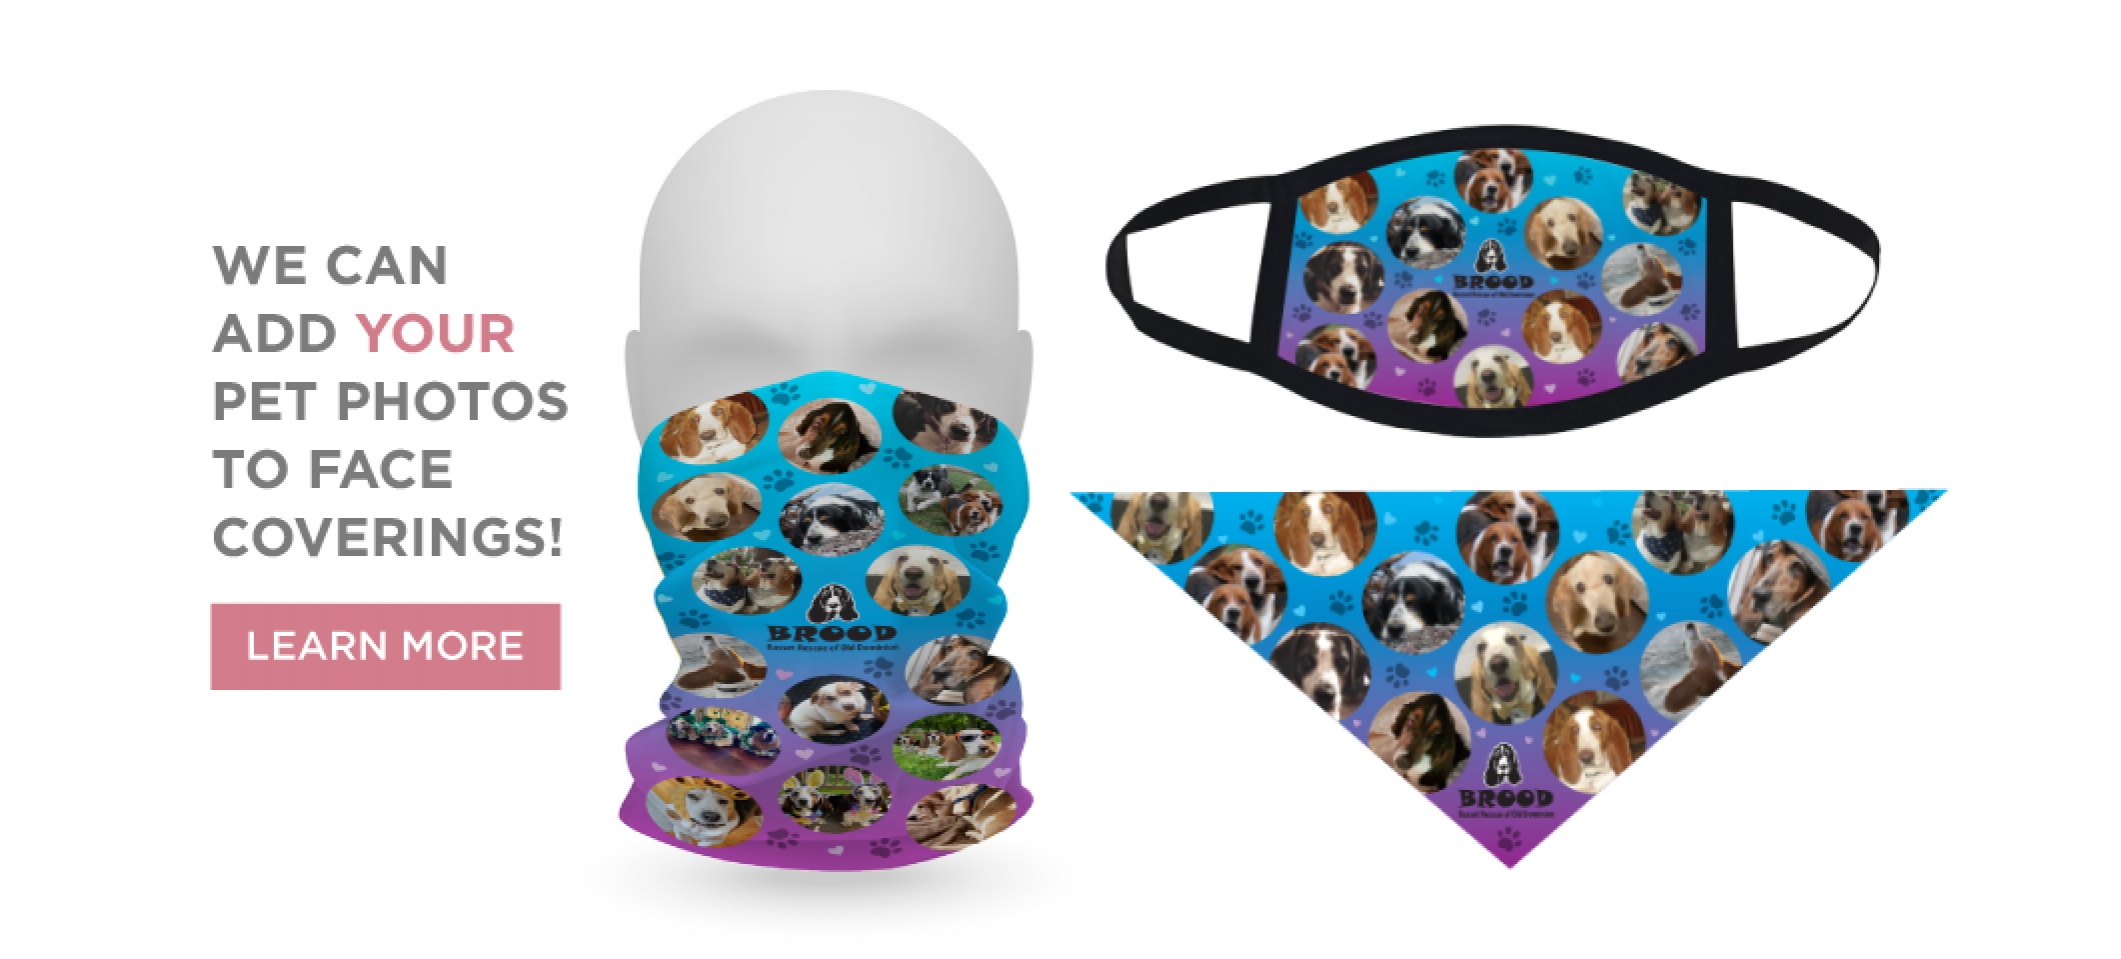 PET PHOTOS ON FACE COVERINGS